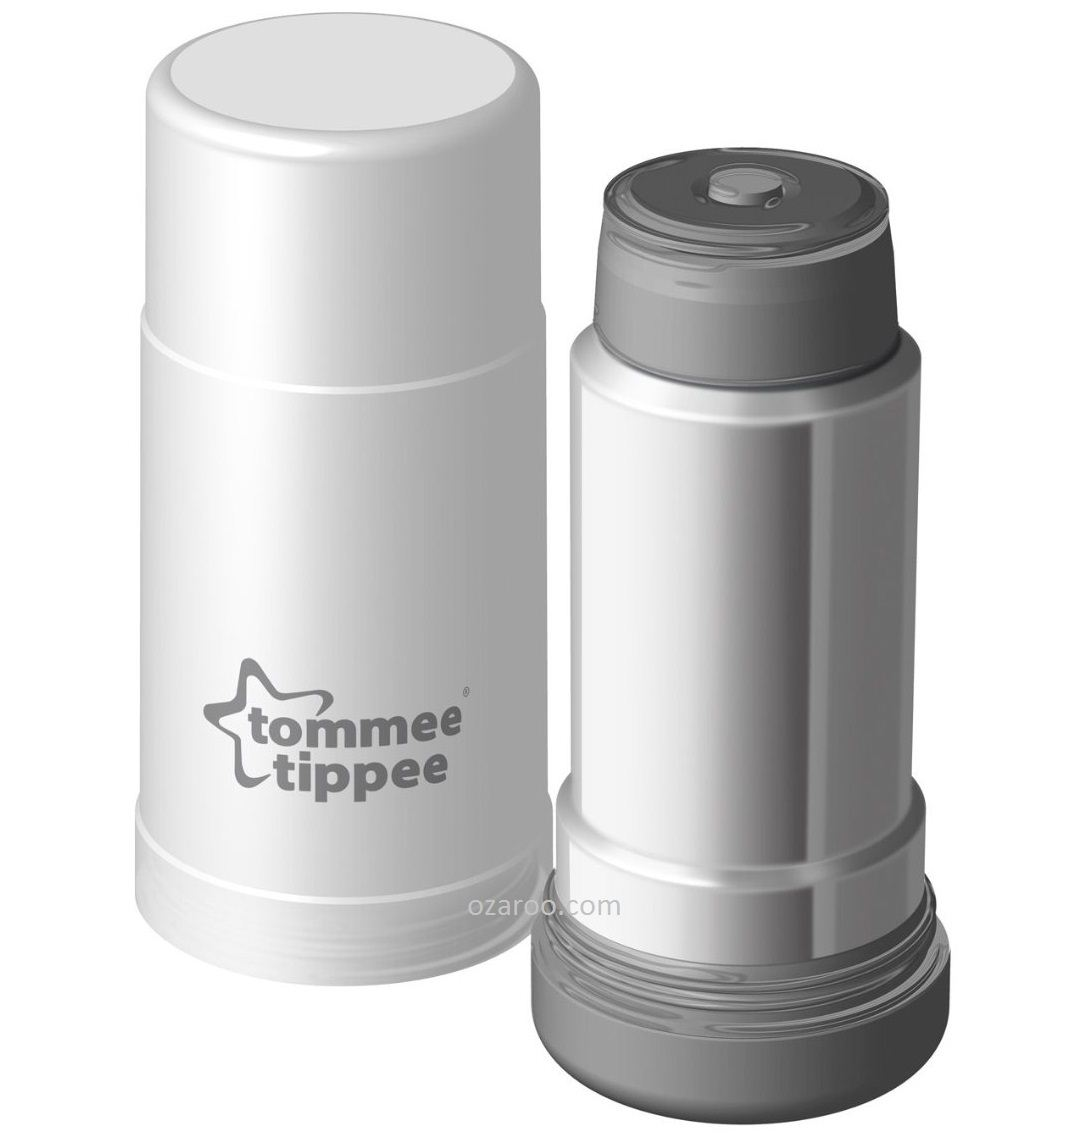 tommee tippee bottle instructions